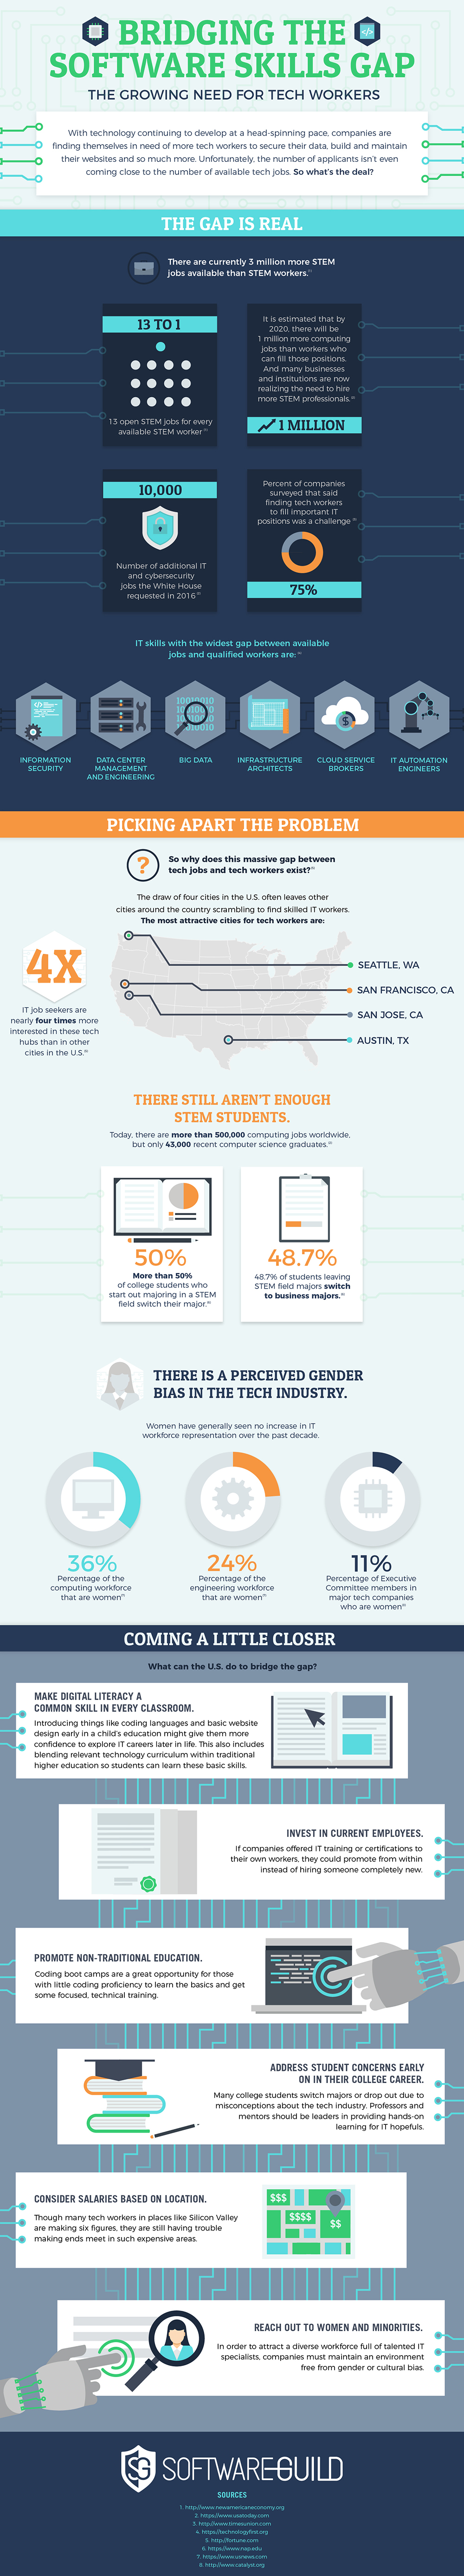 How to Bridge the Growing Demand-Supply Gap for Technology Professionals - Infographic